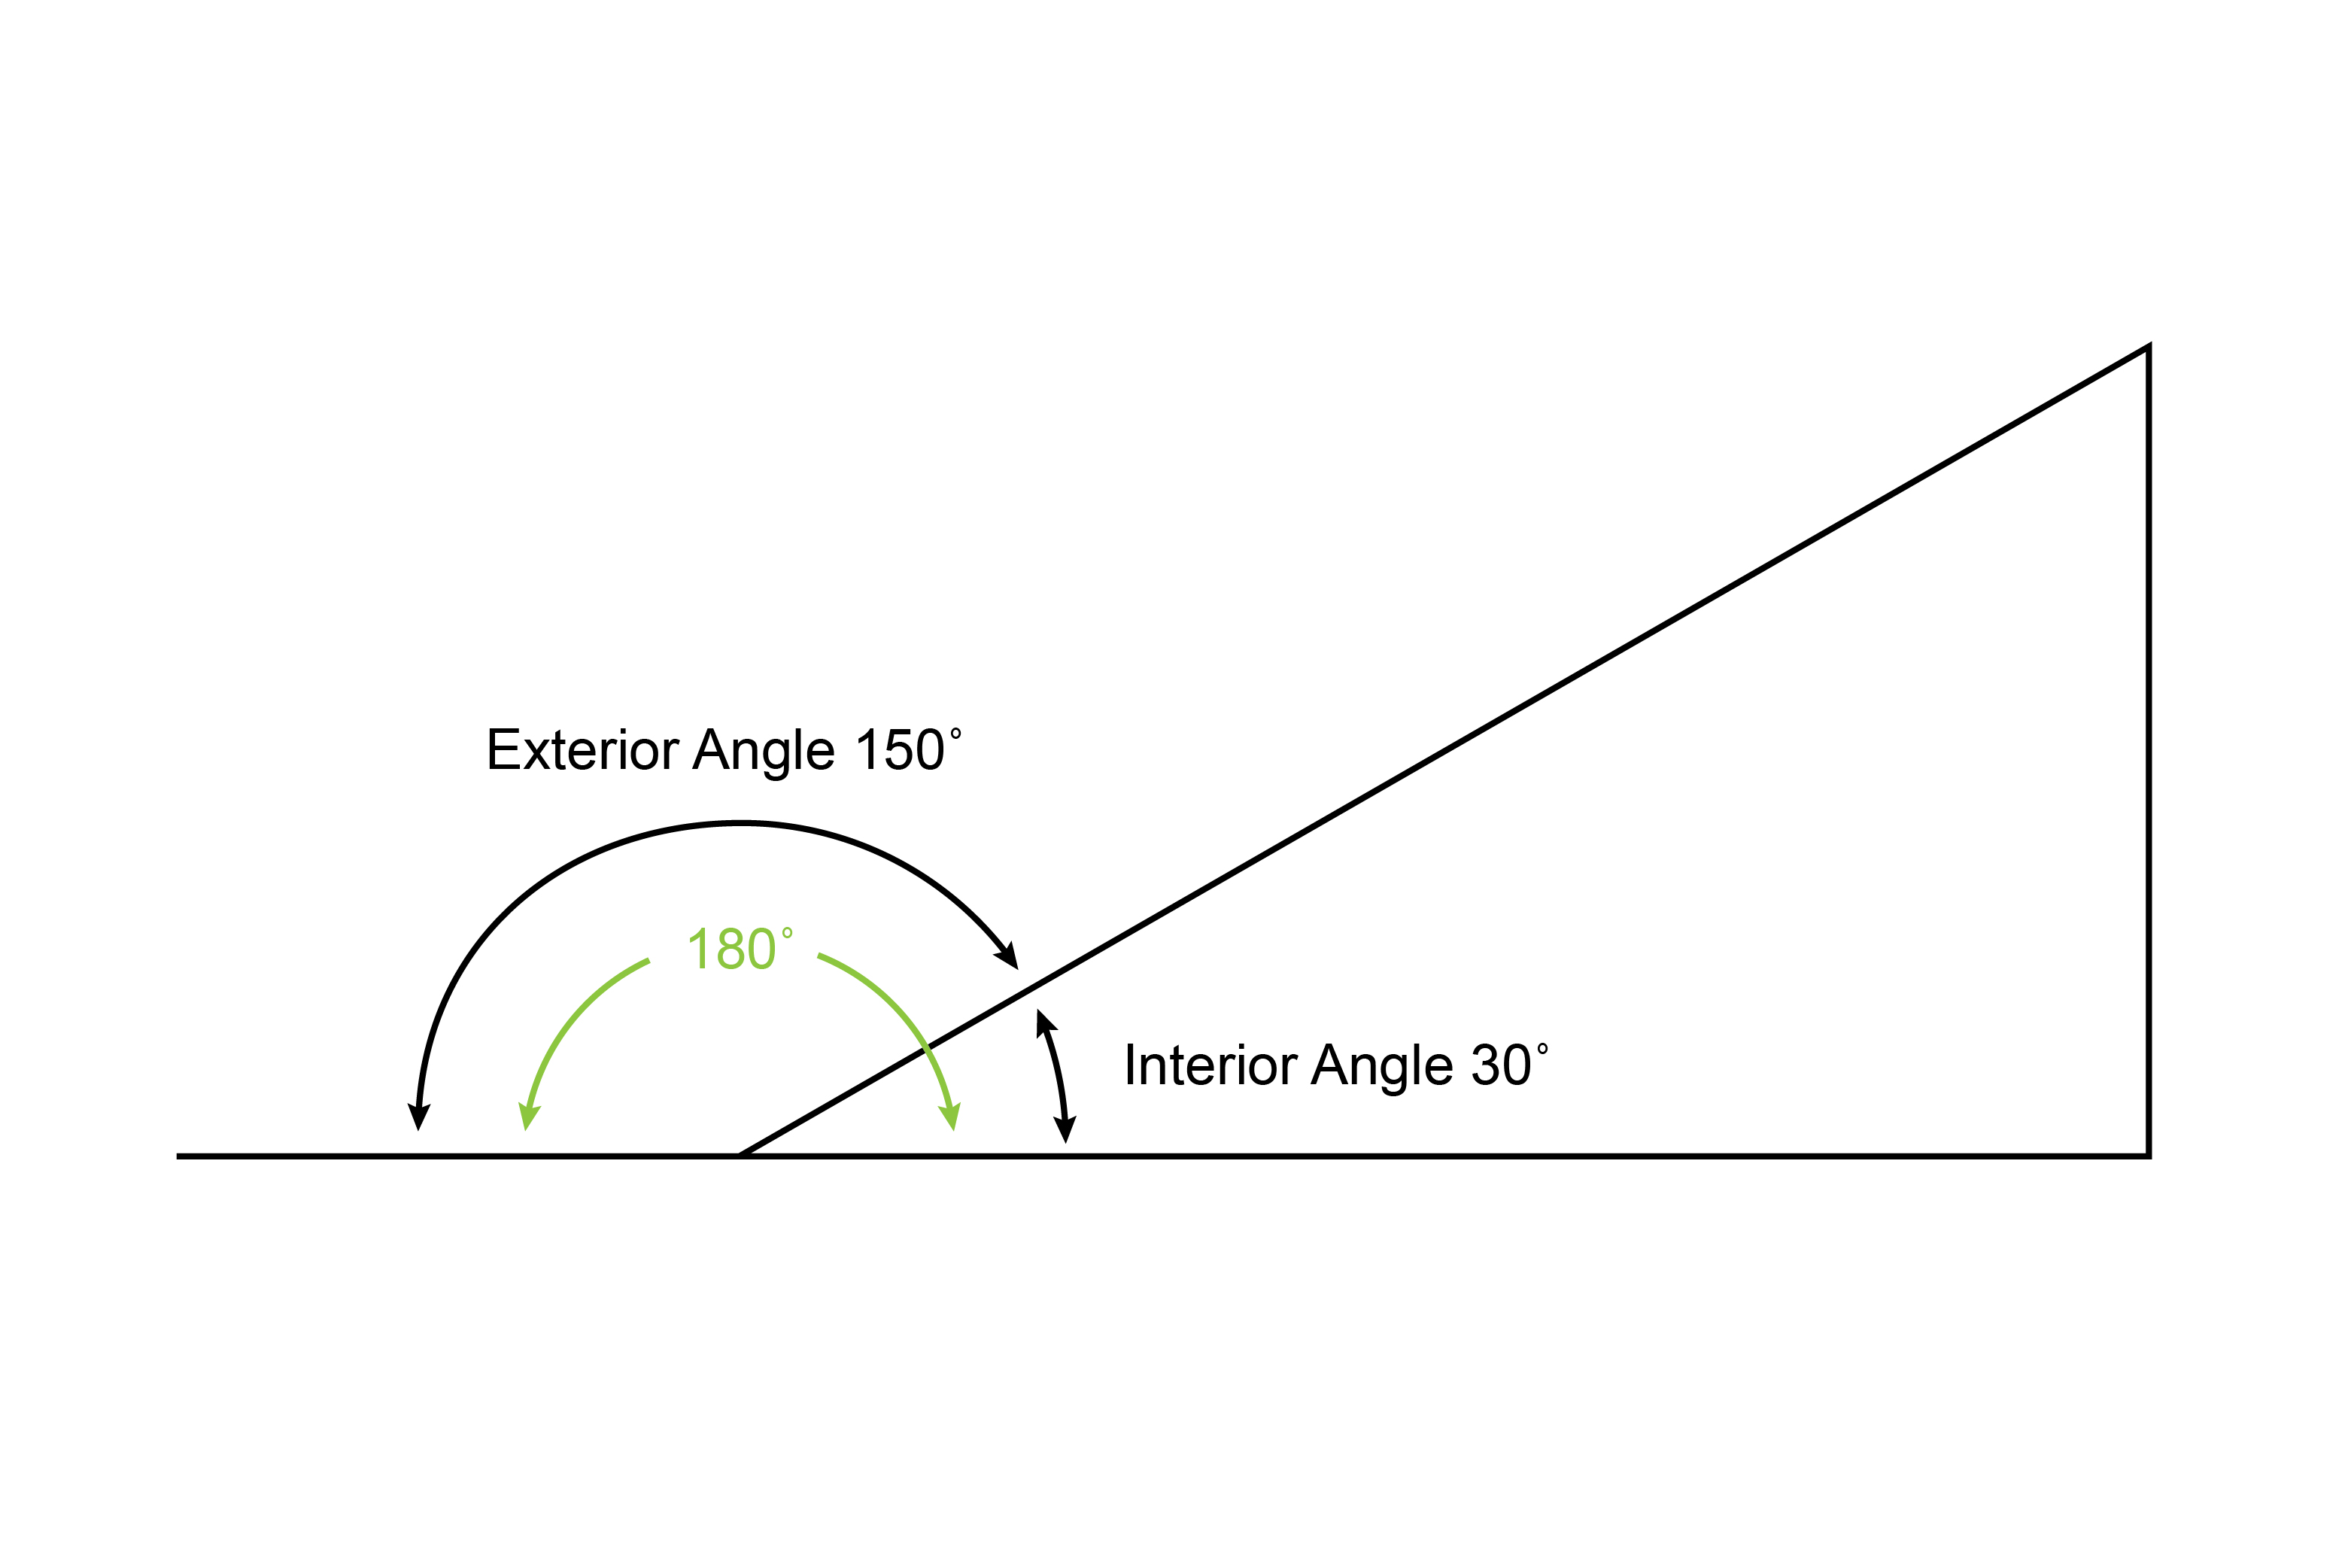 To work out the interior or exterior angle of a polygon you need to define the interior or exterior angle